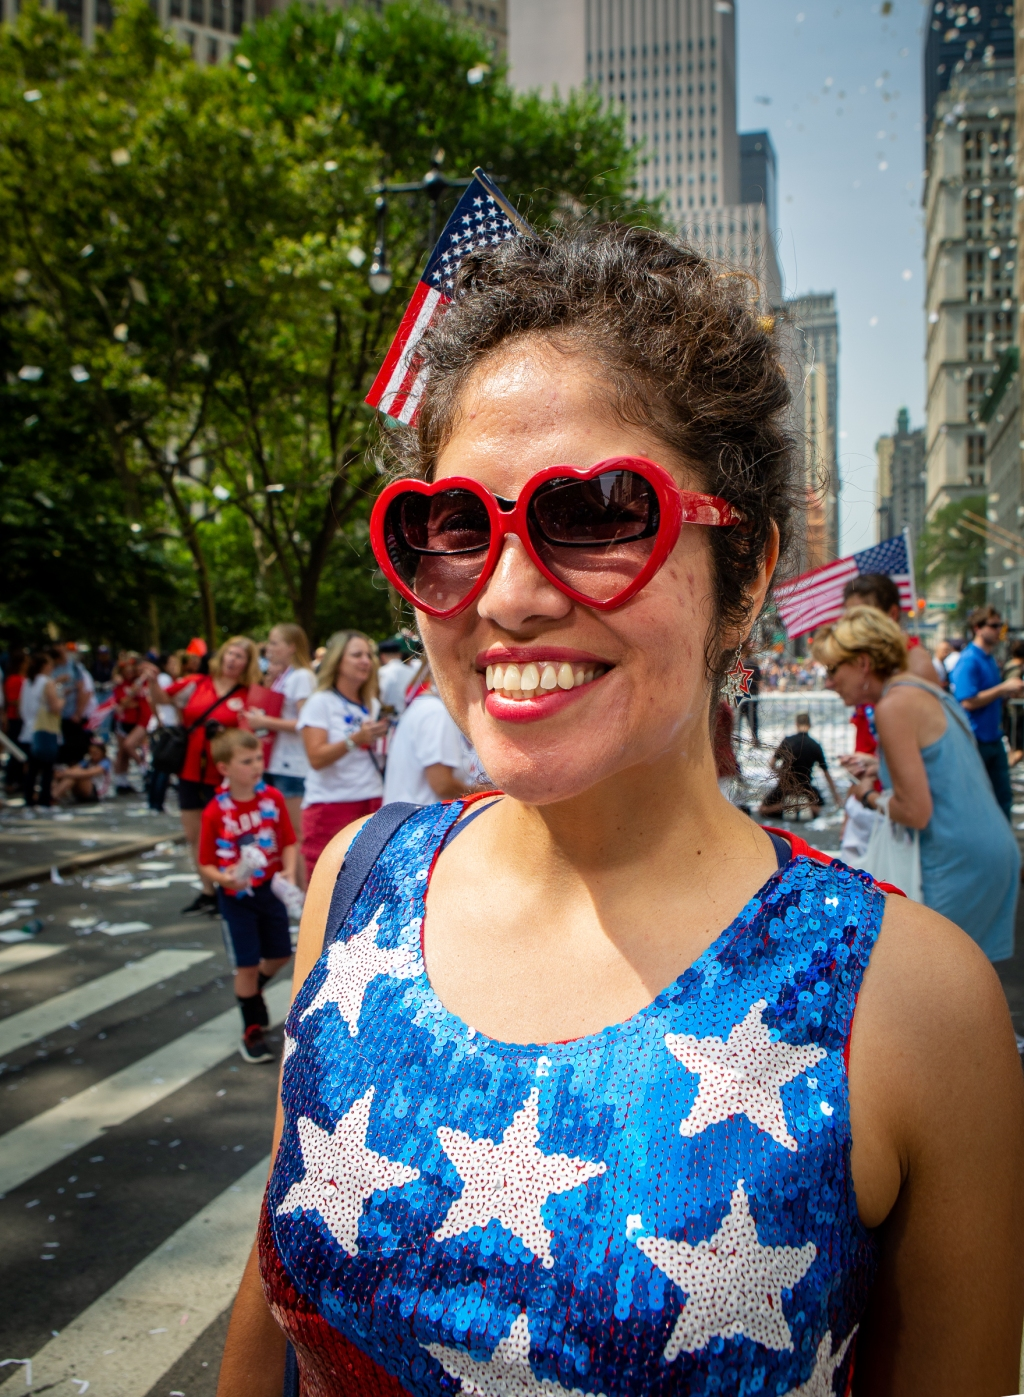 """""""This event represents for me women supporting each other,"""" says Sonia Glenn, 34, who was visiting from Fairfax, Virginia. """"I took the day off to be here. The energy is so inspiring."""""""